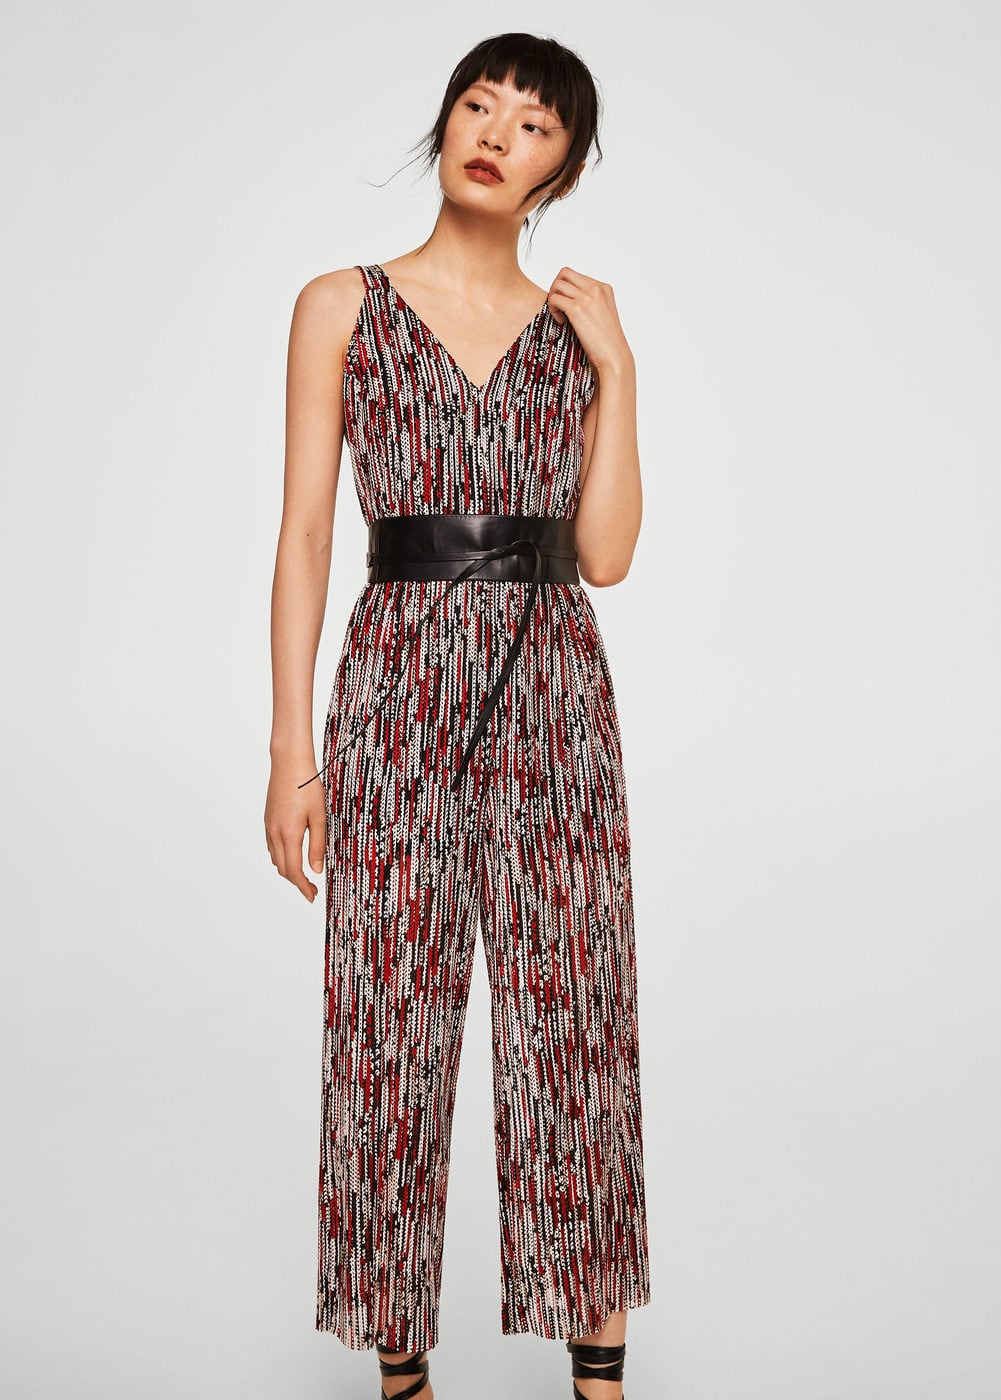 Textured Knit Jumpsuit by Mango